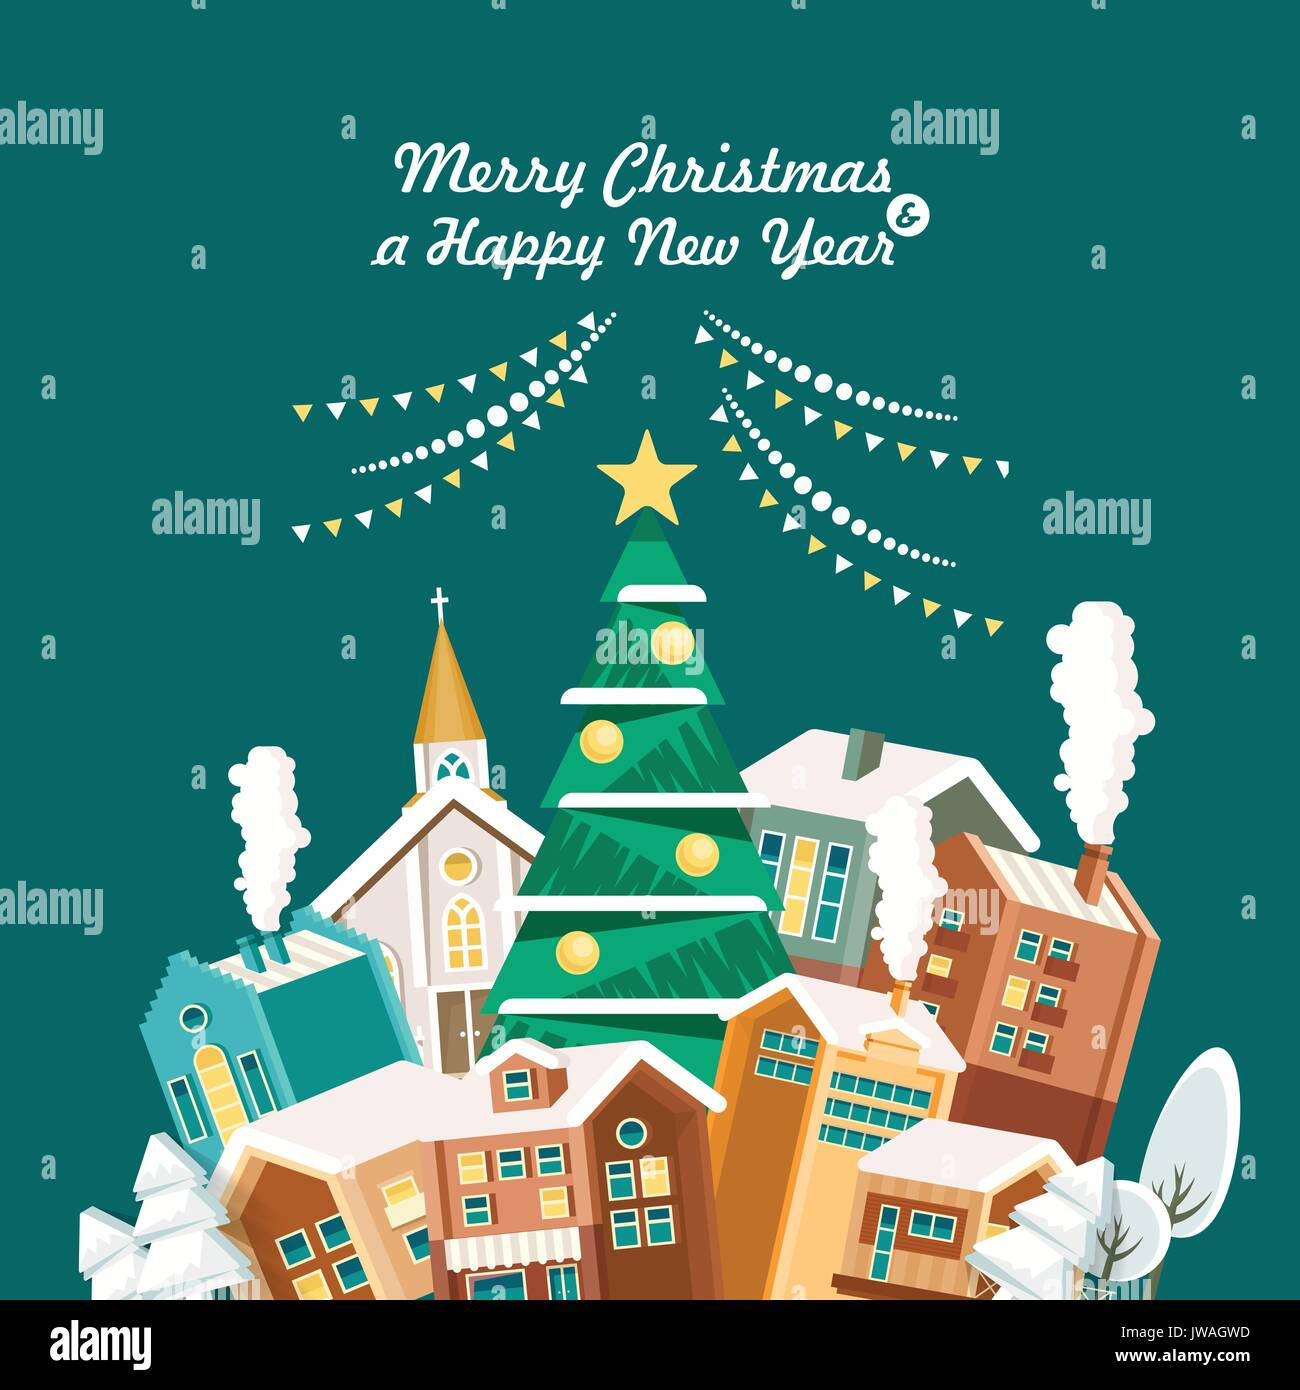 Merry Christmas And A Happy New Year Vector Greeting Card In Modern